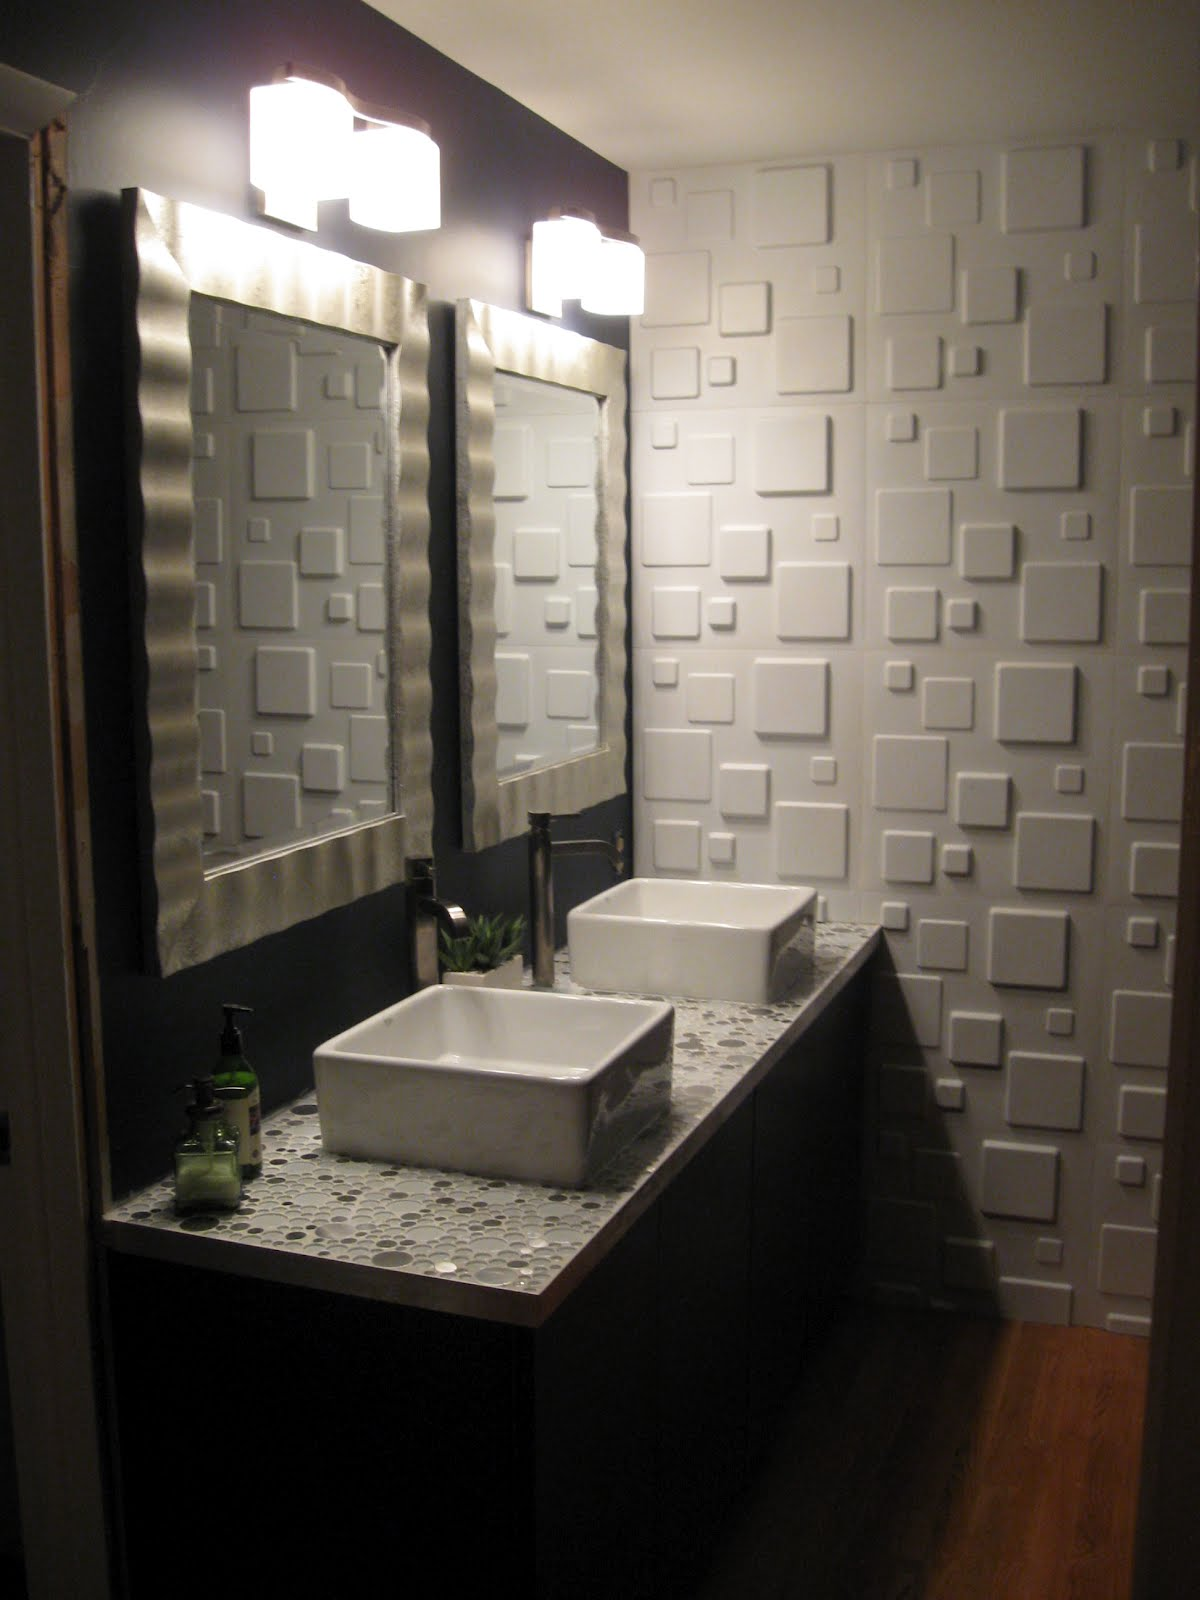 Ikea bathroom vanity ideas designs custom home design for Cool bathroom ideas